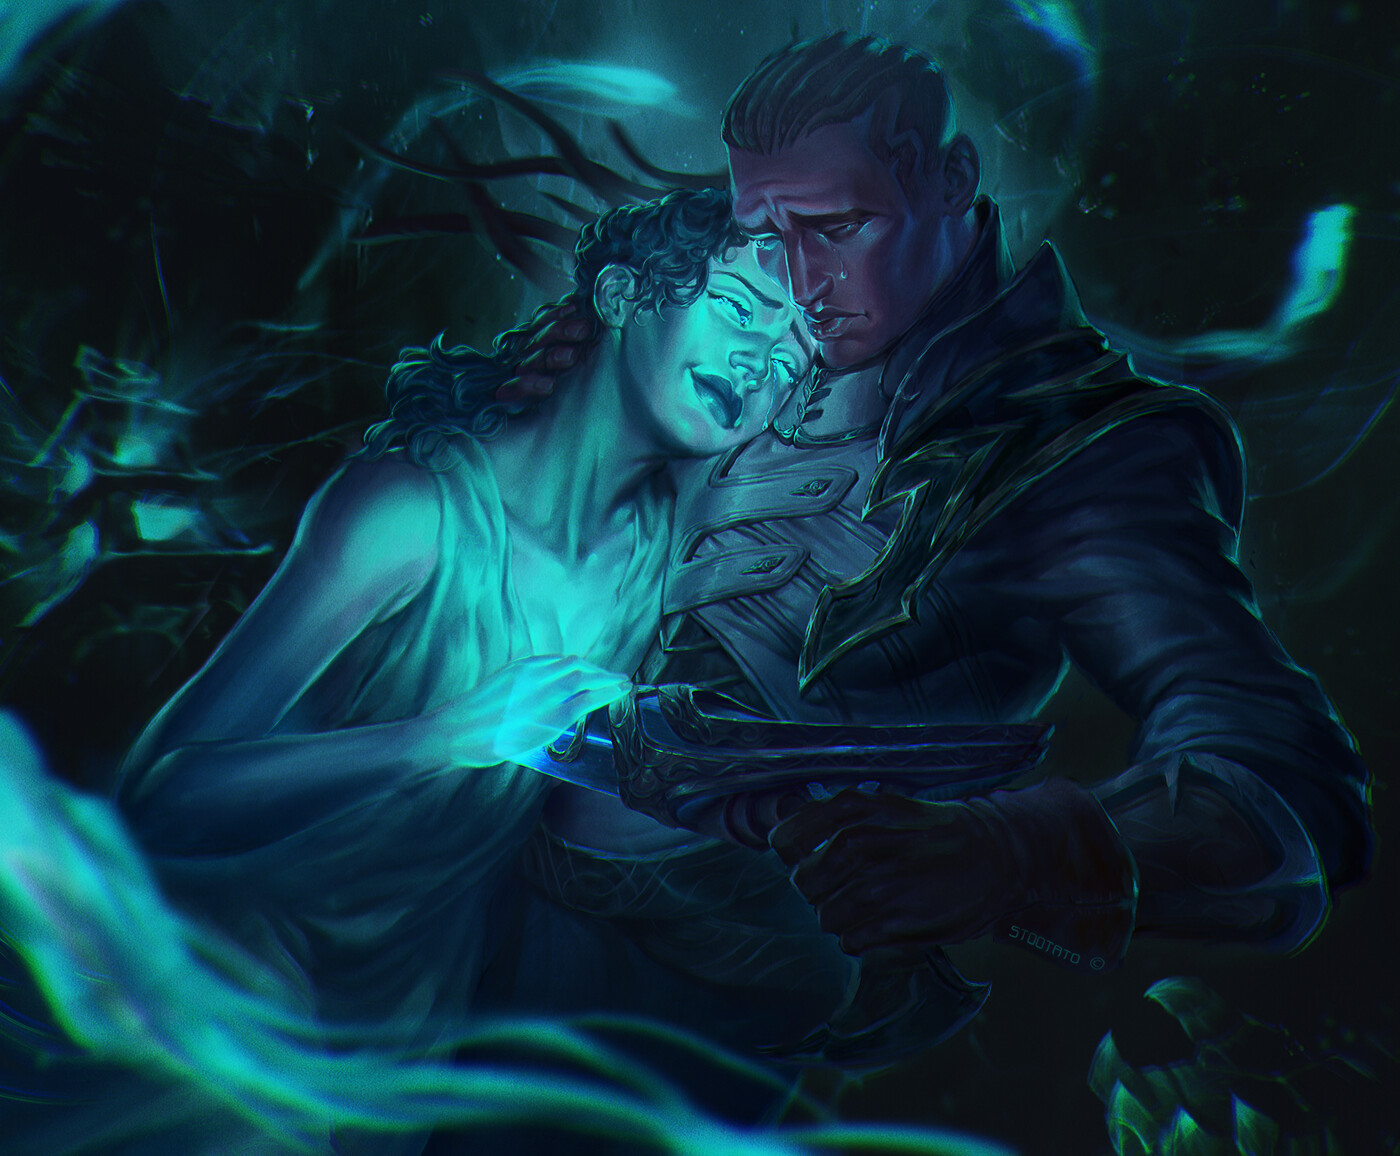 ArtStation - Lucian and Senna, Zoe Zhu